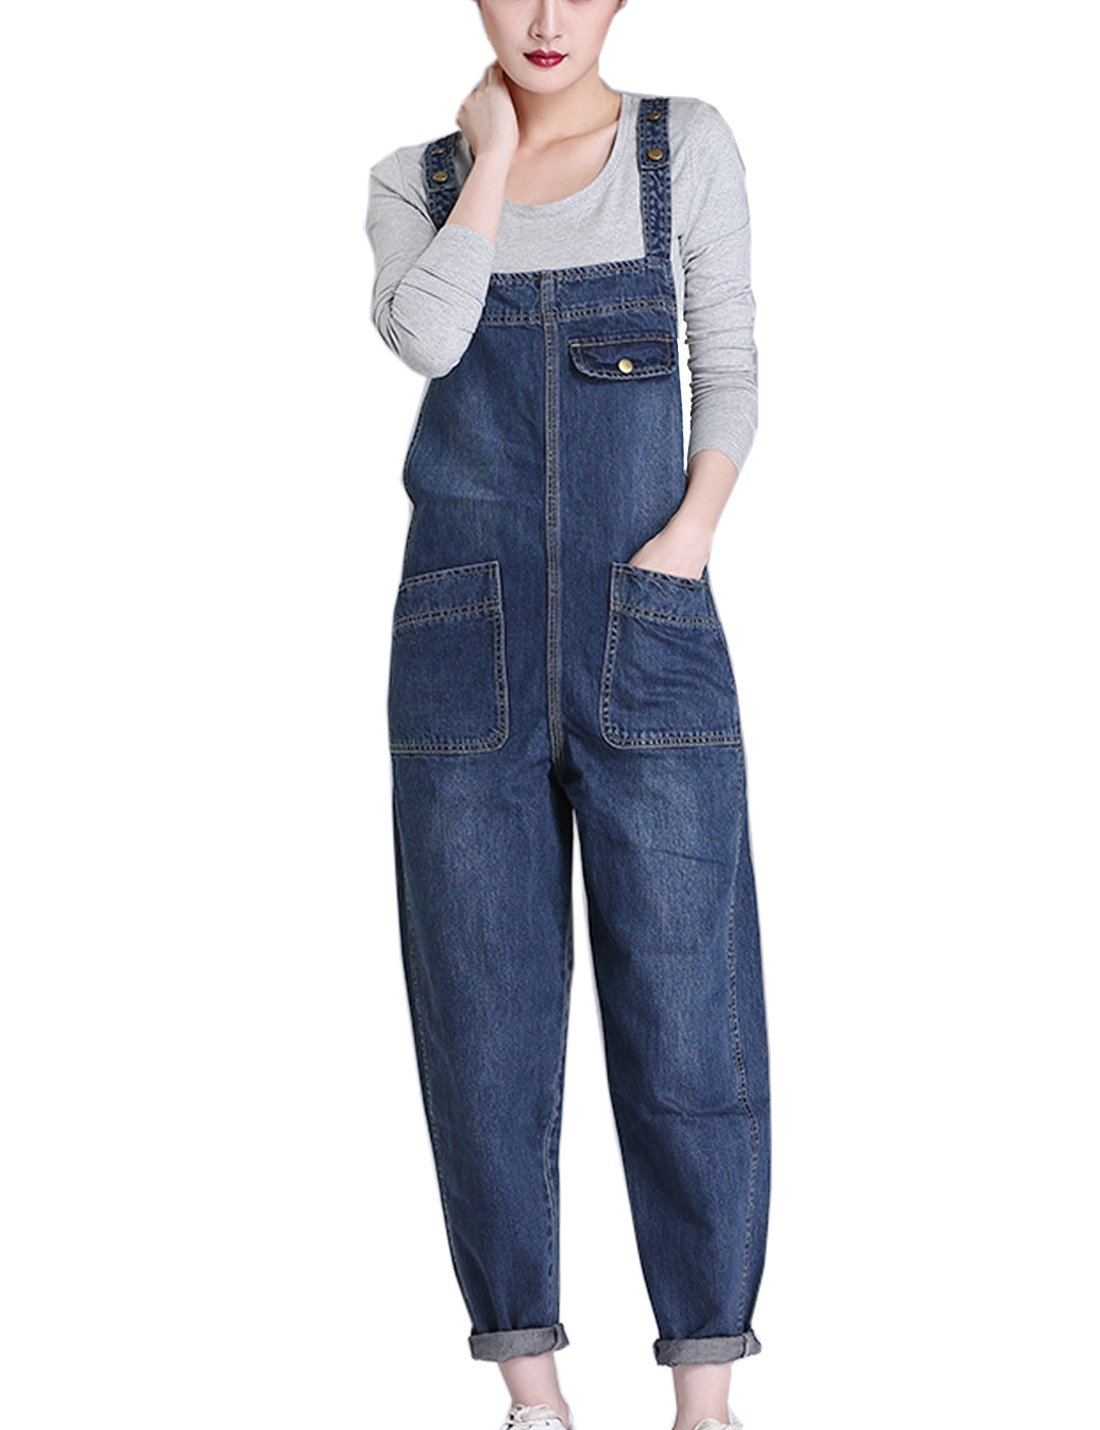 Flygo Women's Casual Bib Denim Overalls Pant Jeans Jumpsuits with Pockets (XX-Large, Blue)